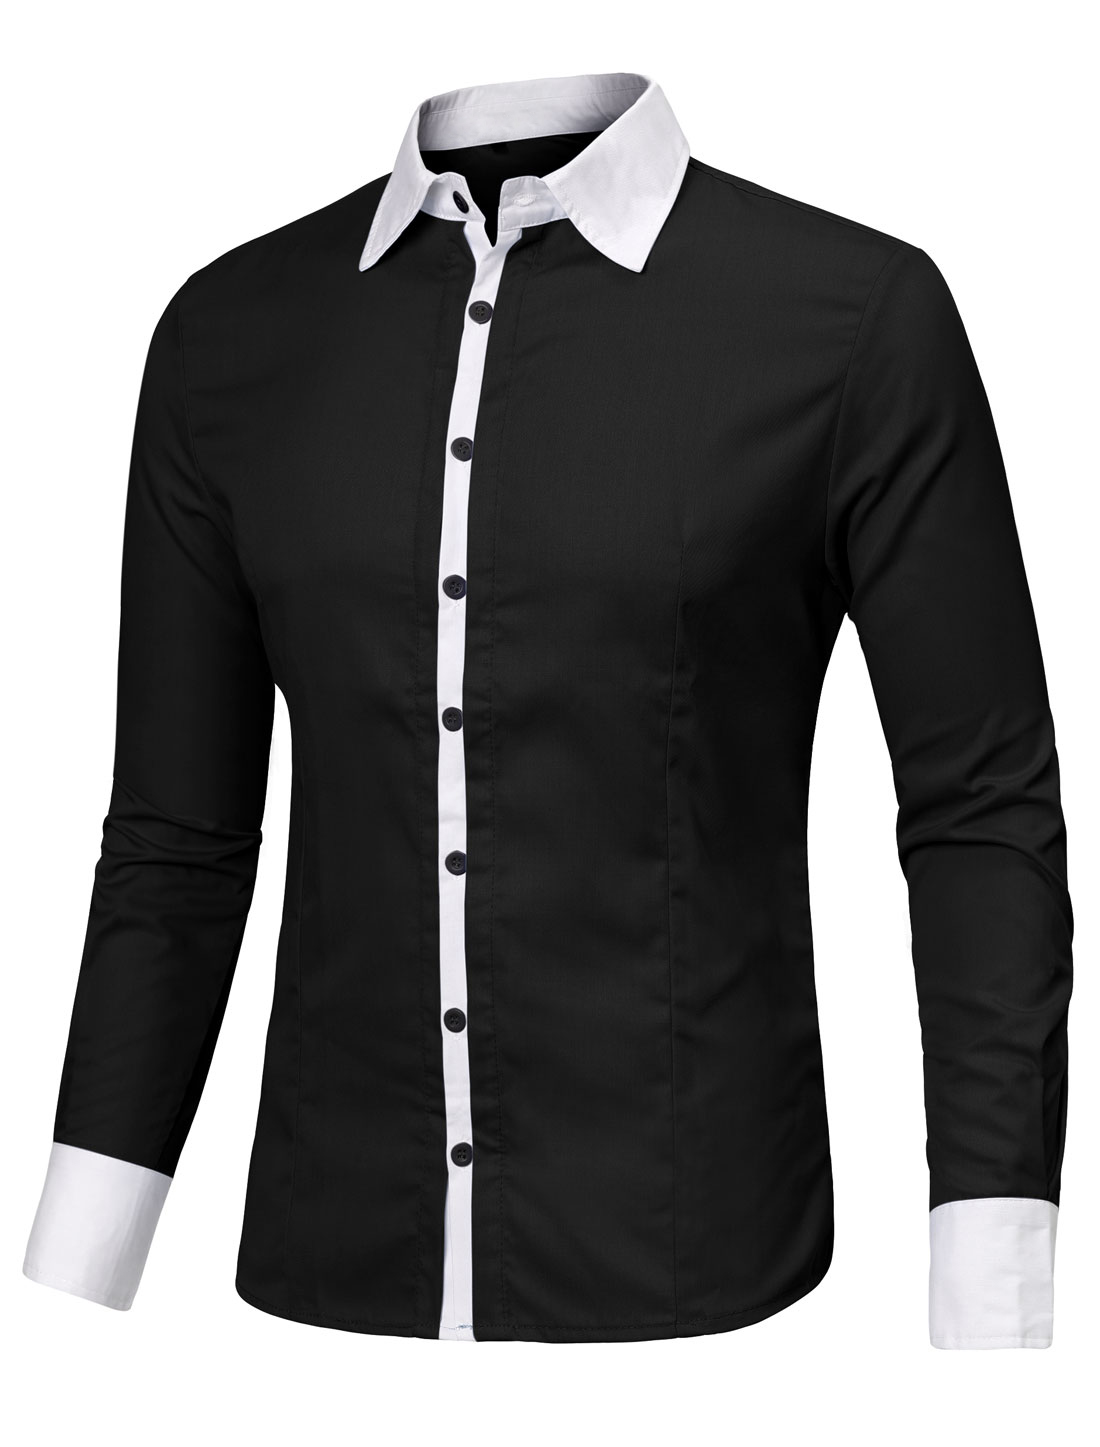 Men Long-Sleeved Buttons Cuffs Cozy Fit Top Shirt Black M